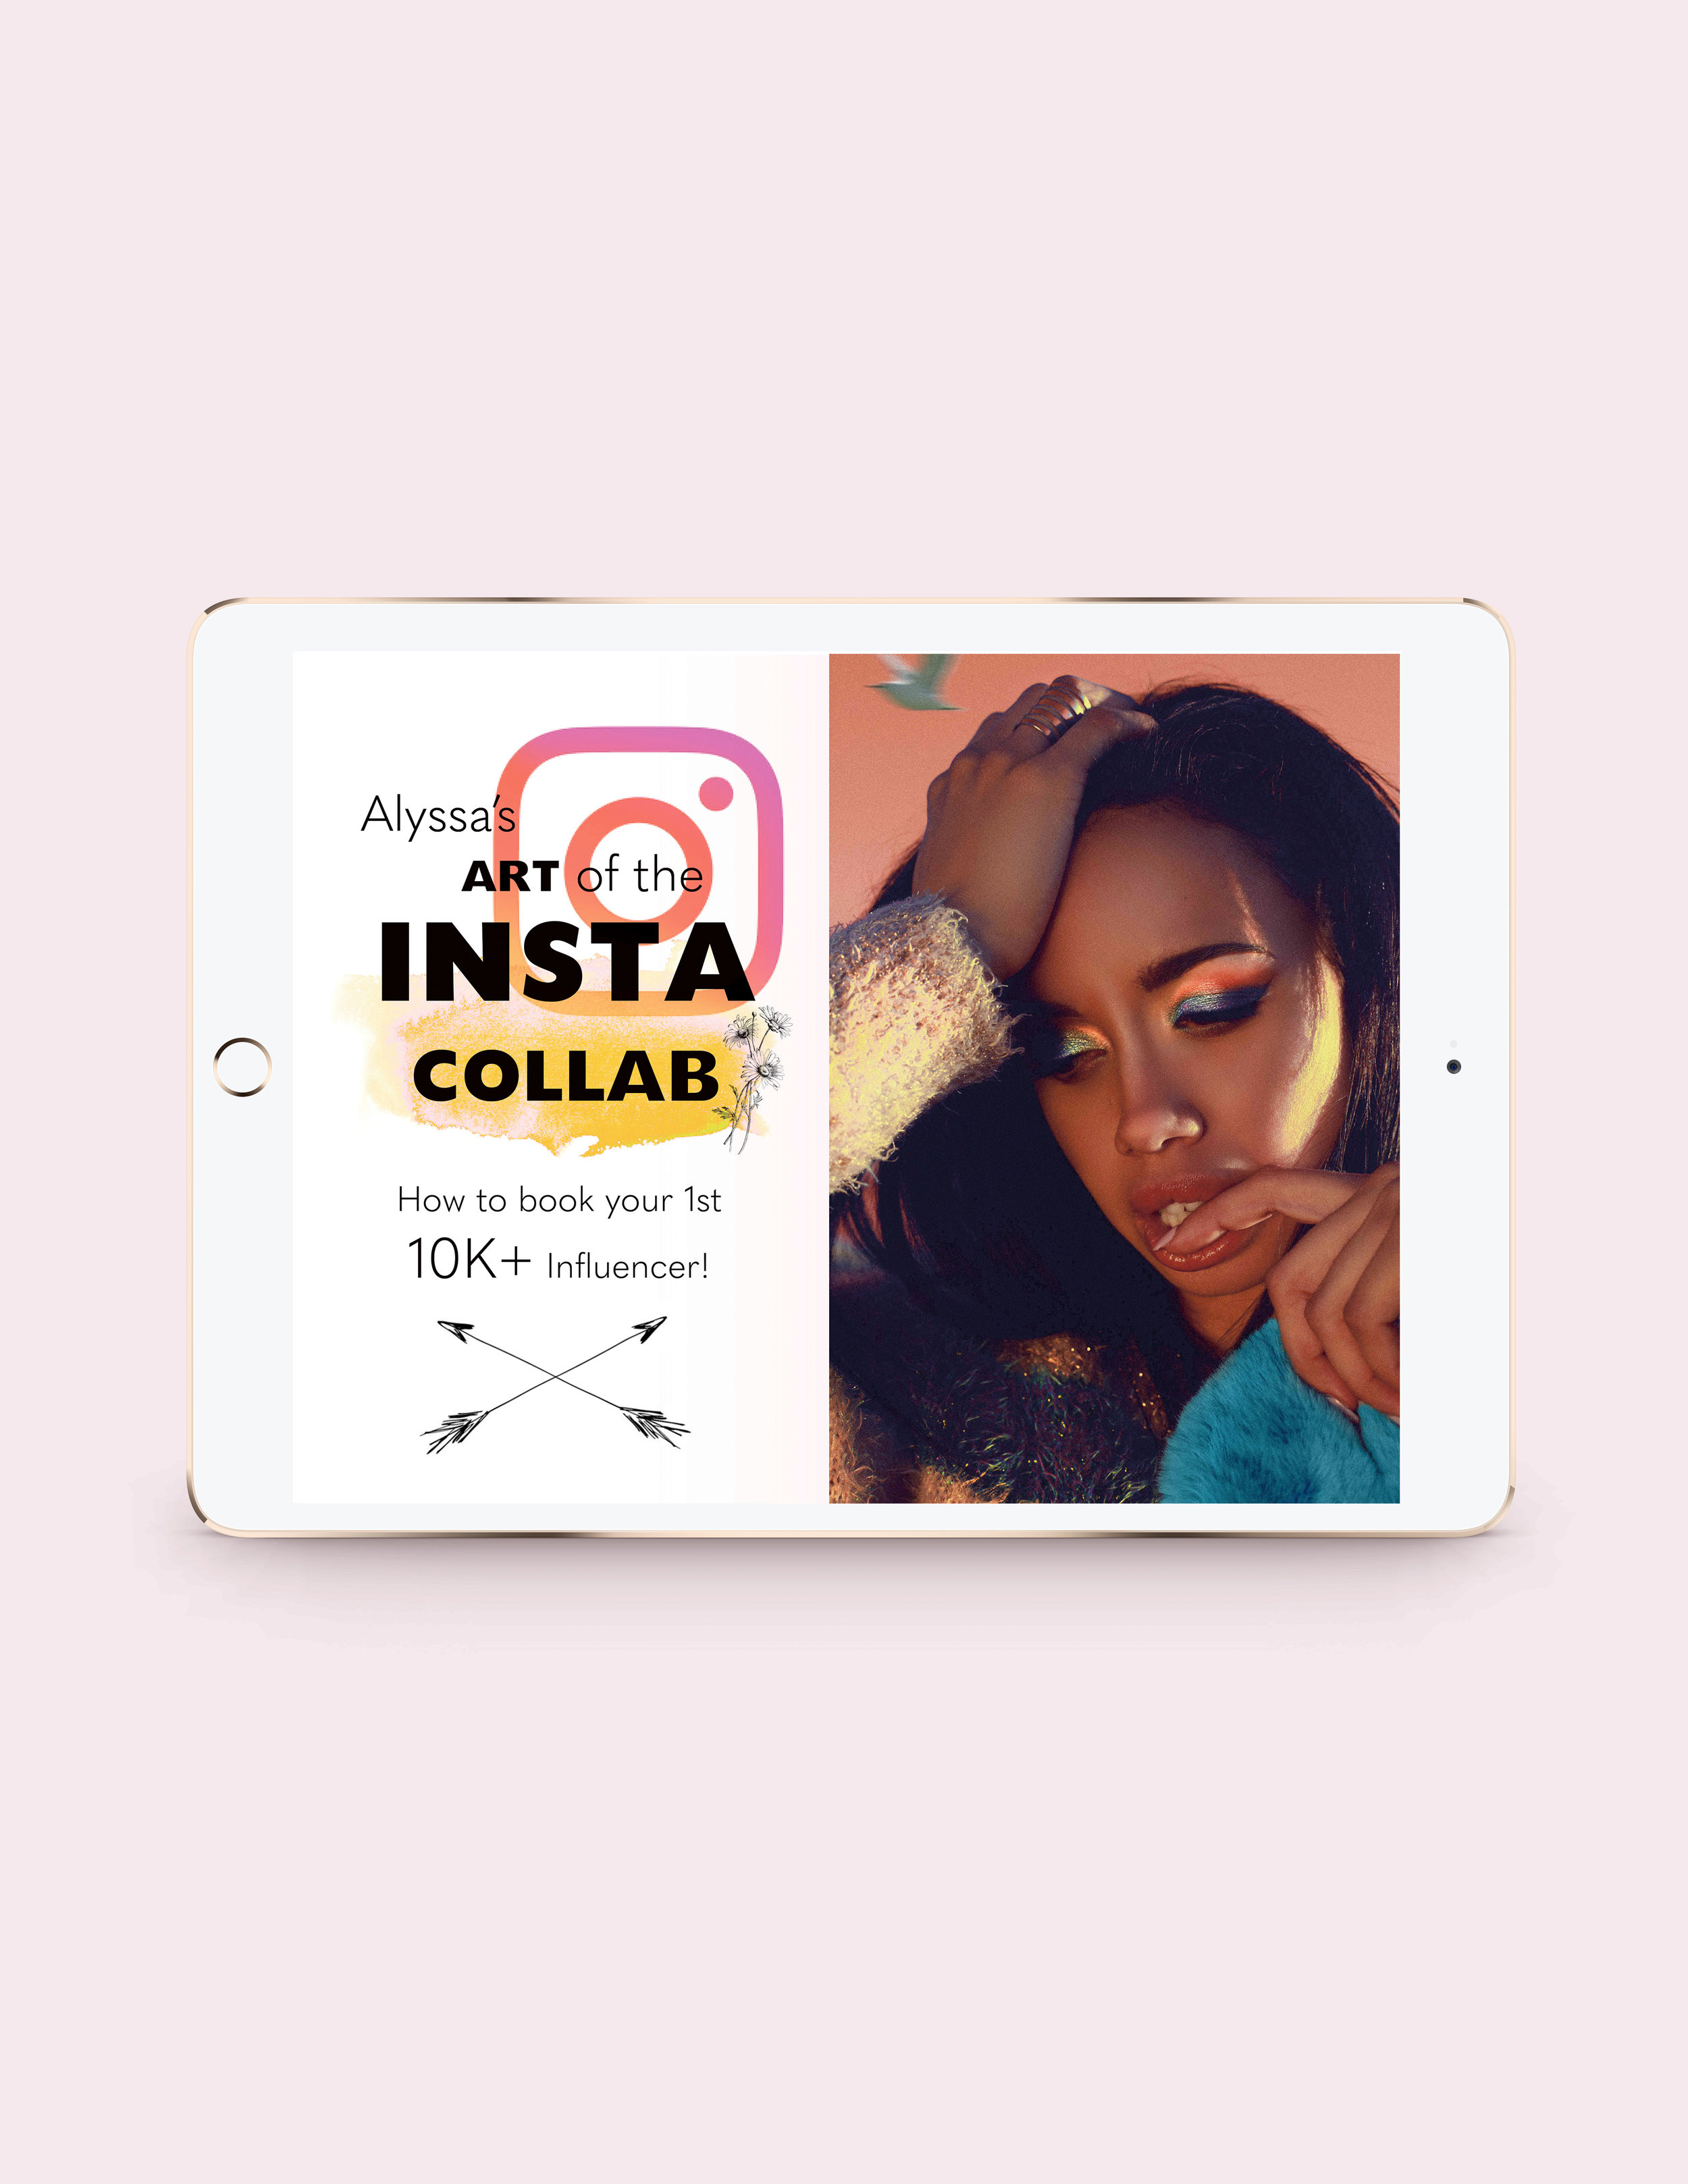 Alyssa's Art of the Insta Collab - The Complete Video Guide Workshop to Booking your very first 10K+ Influencer!